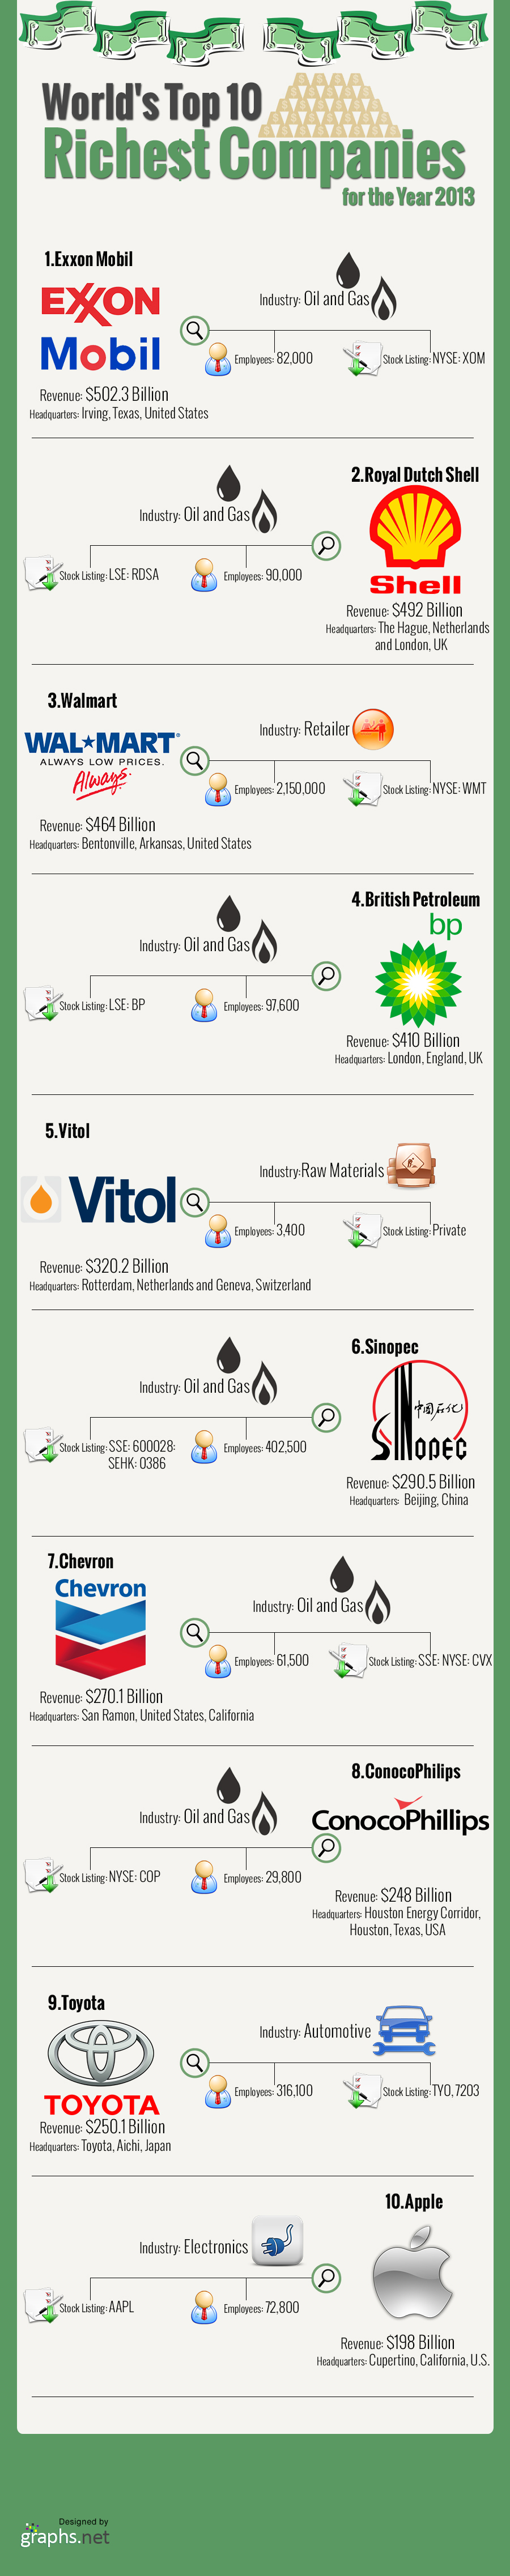 World 39 S Top 10 Richest Companies For The Year 2013